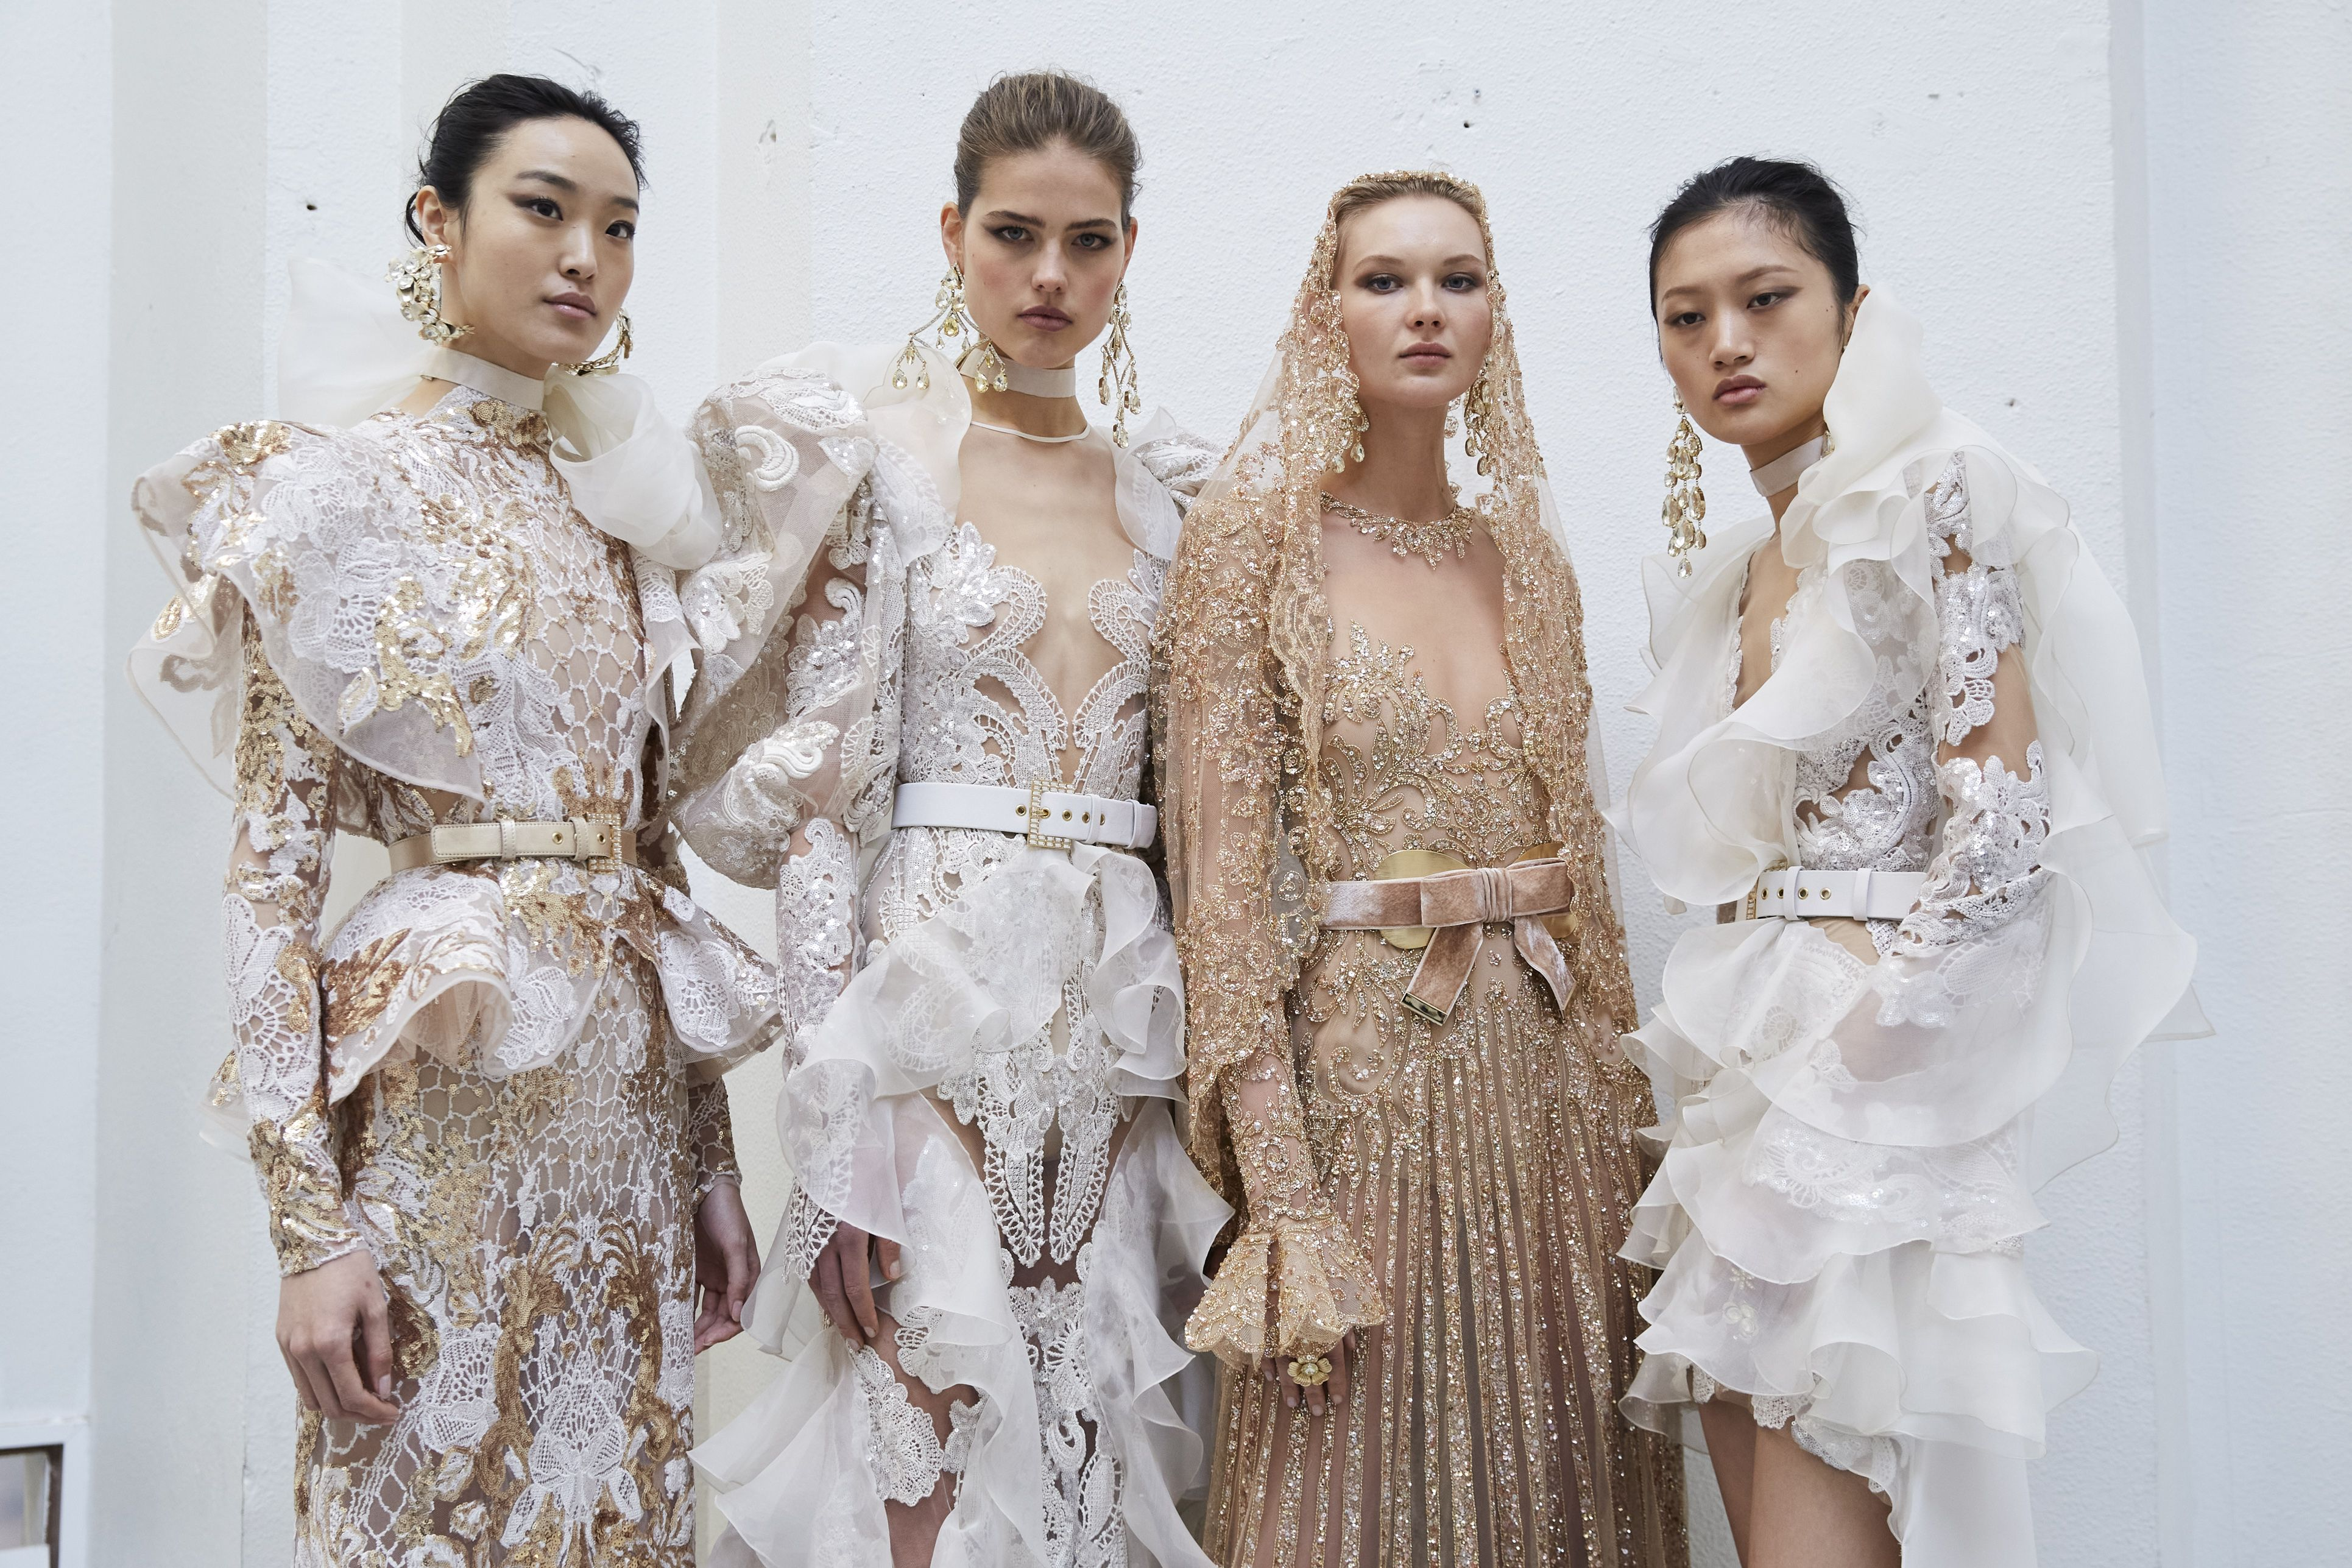 L'Orèal x Elie Saab Just Brought Haute Couture To Beauty